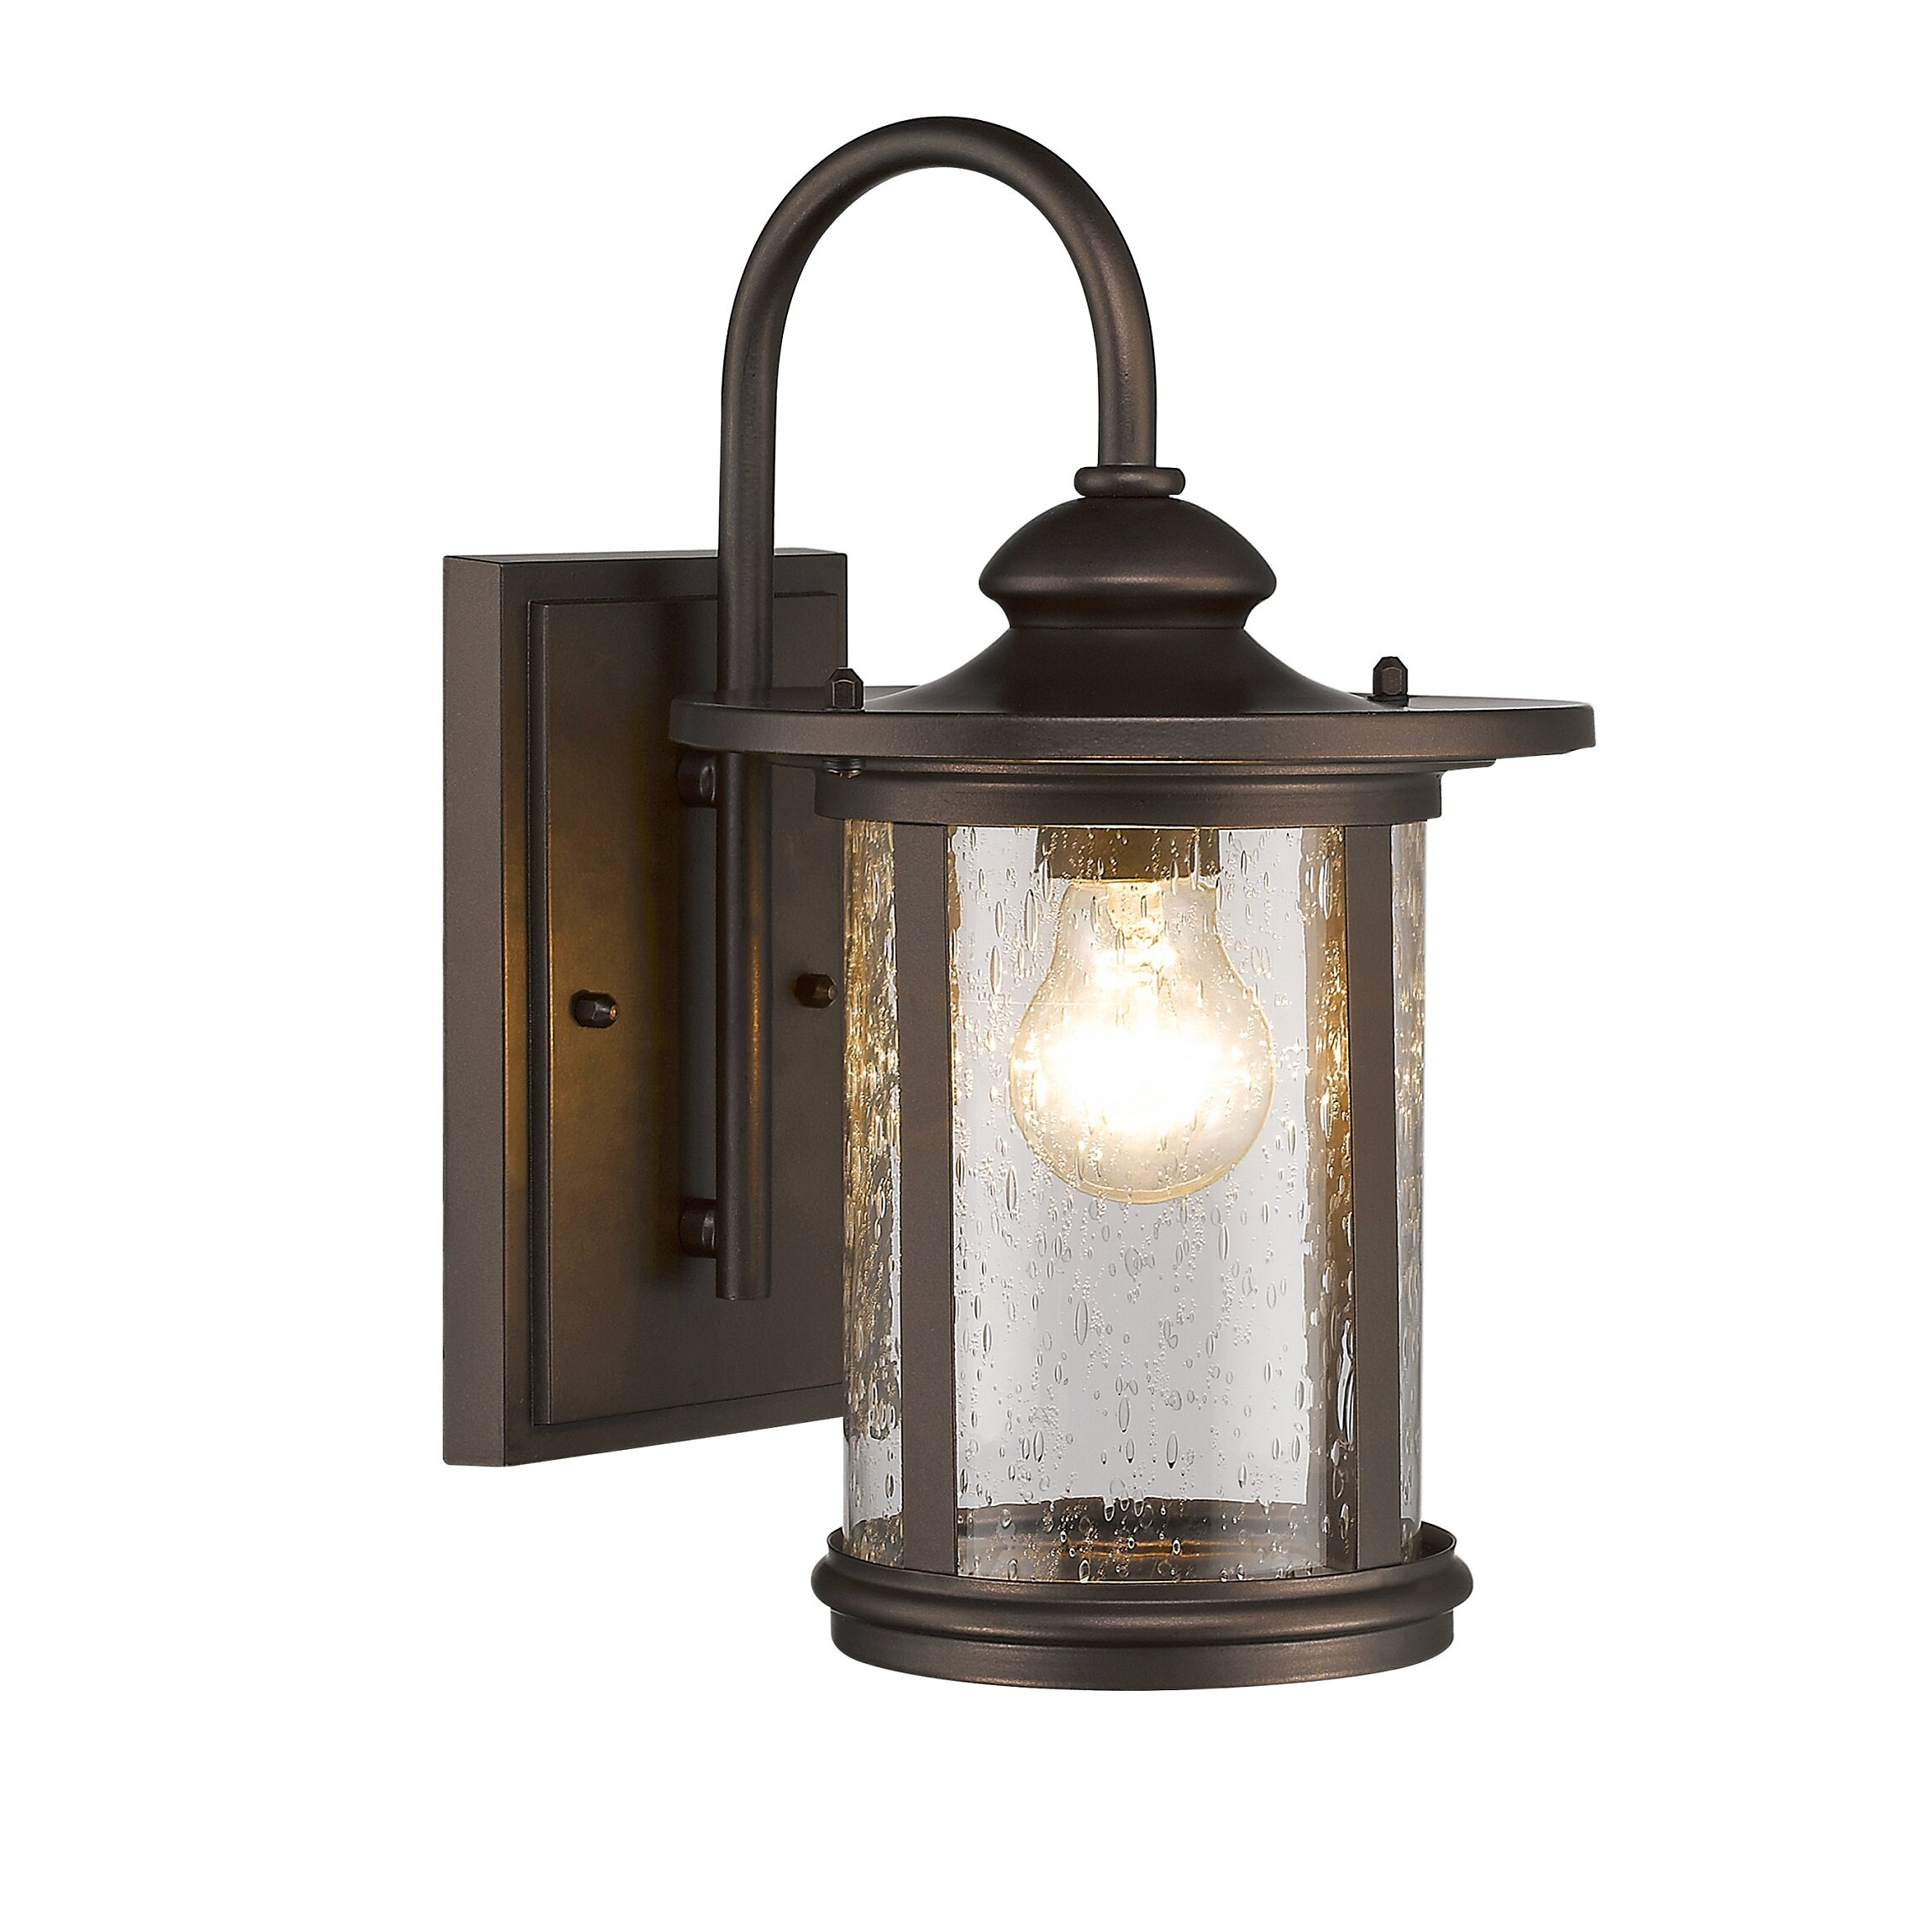 Wayfair Outdoor Wall Lights : Cole 1 Light Outdoor Wall Lantern Wayfair